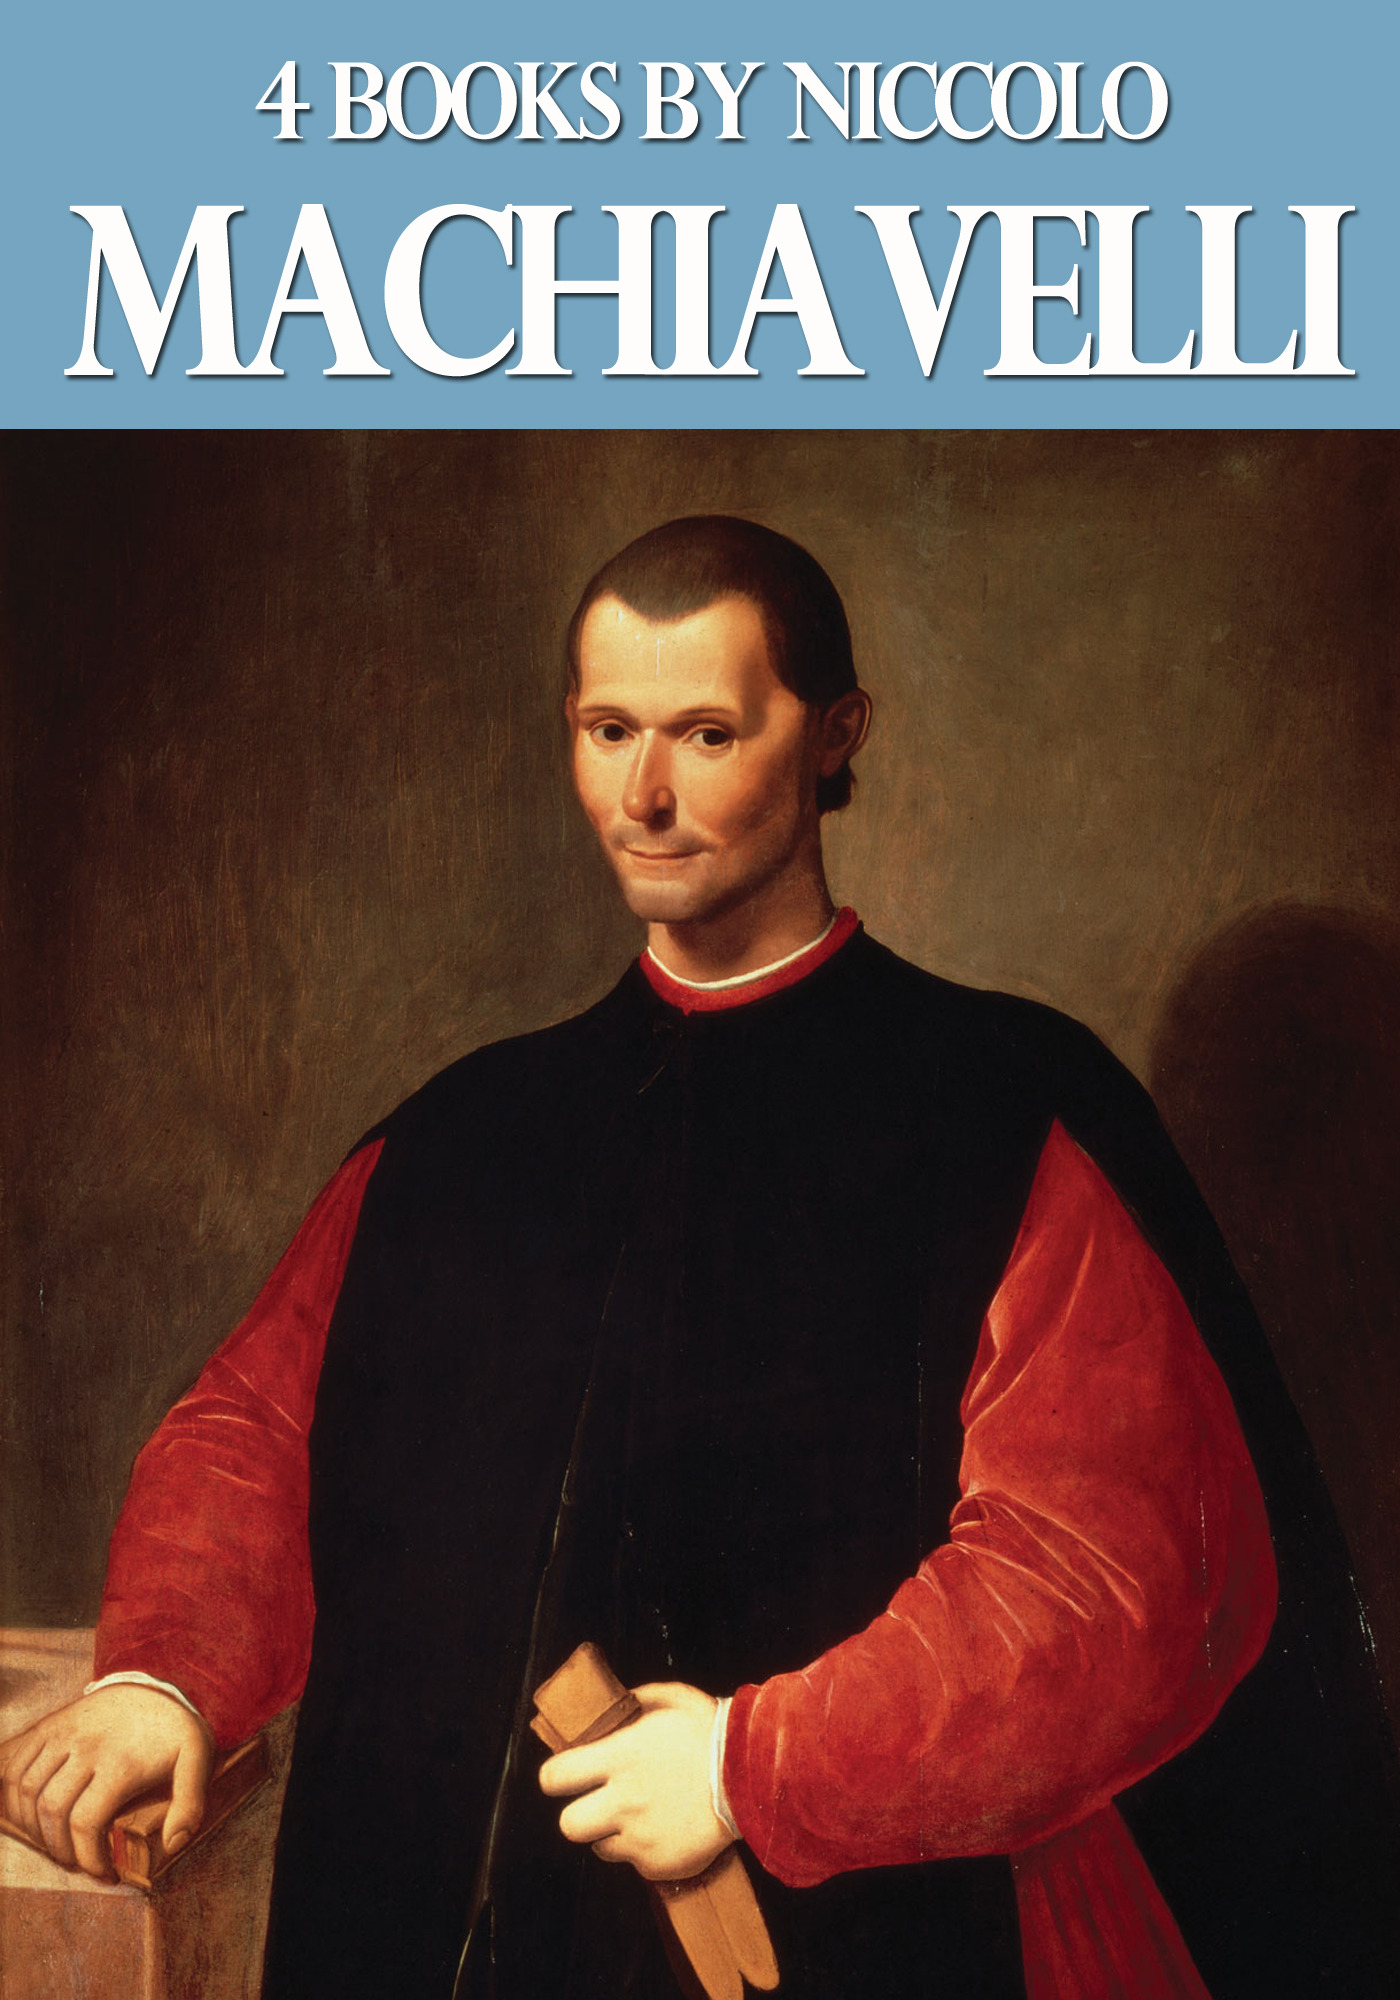 4 Books by Niccolo Machiavelli By: Niccolo Machiavelli